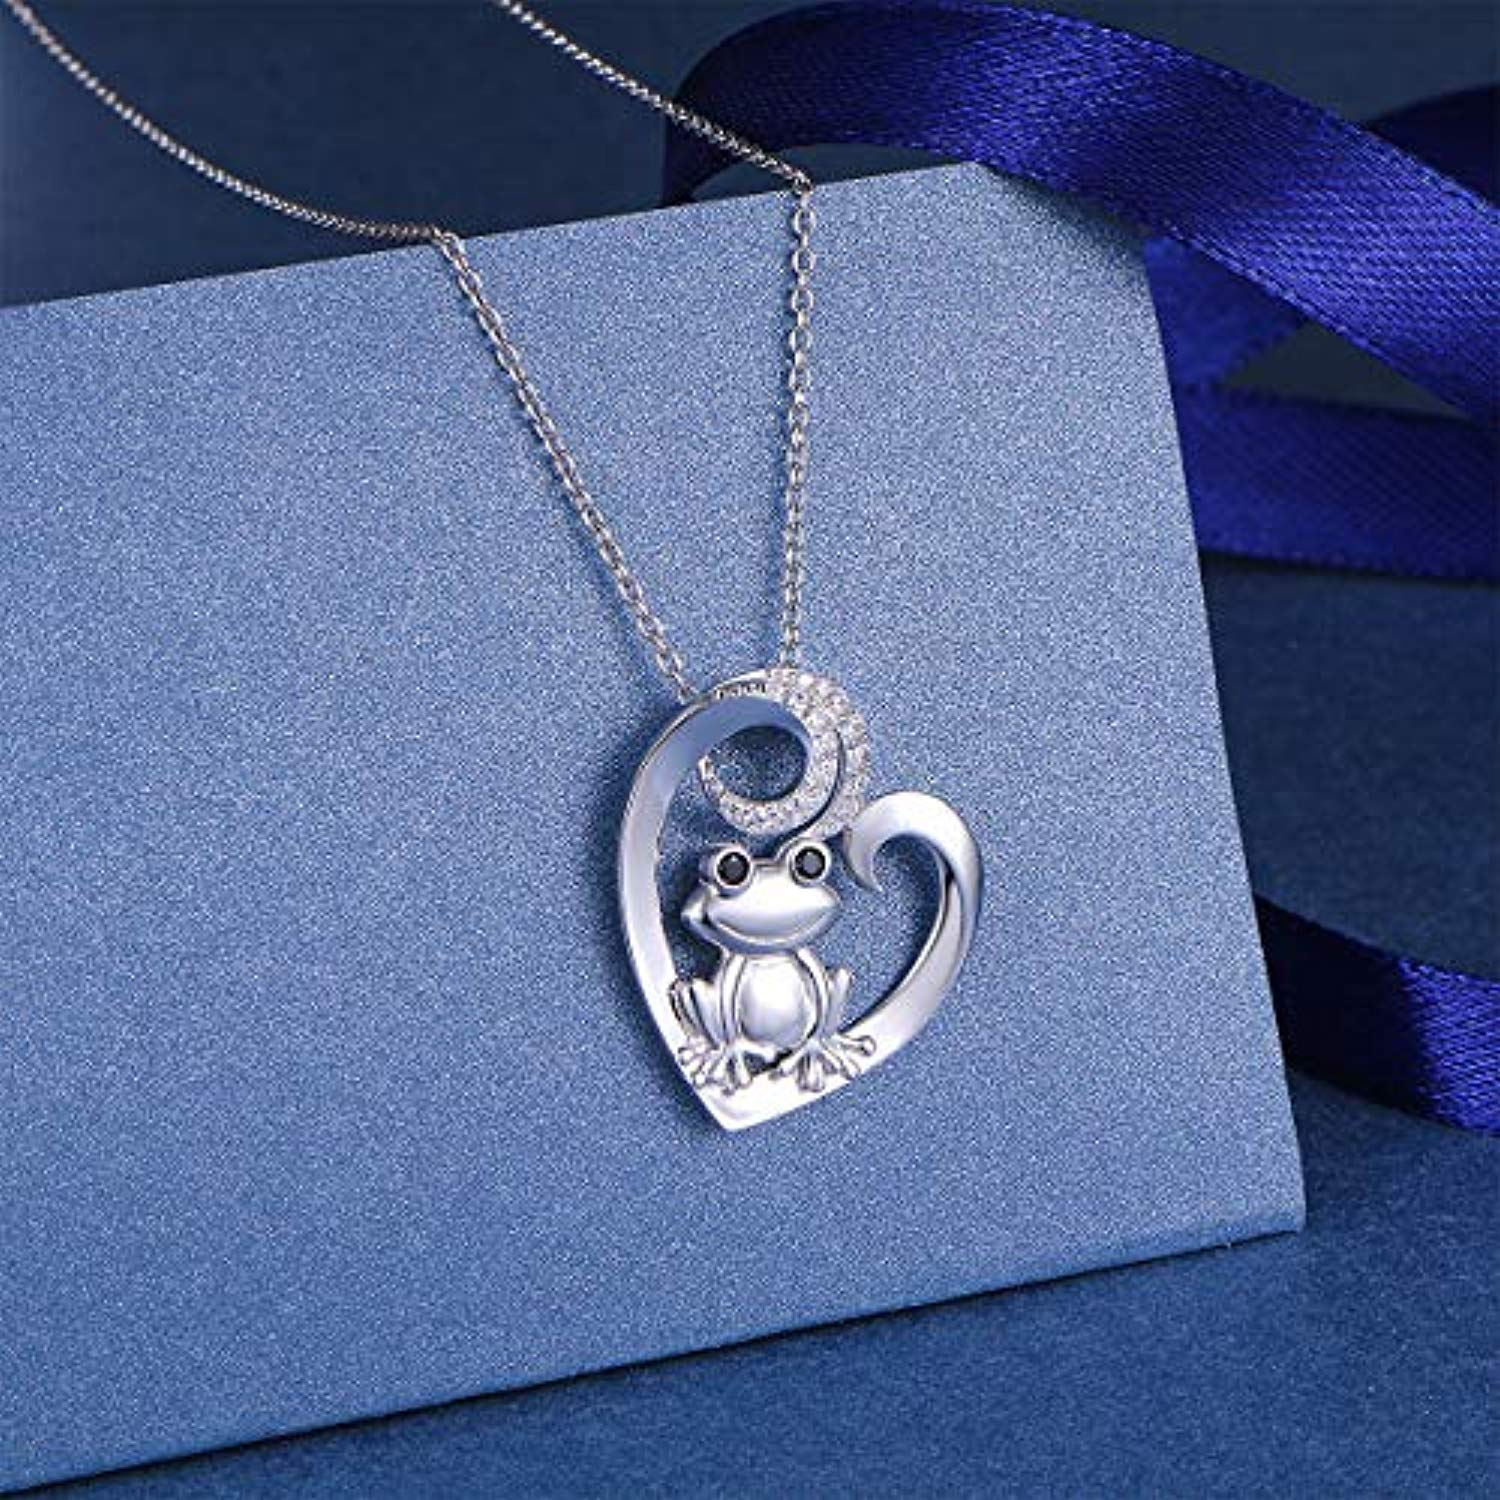 S925 Sterling Silver Frog Heart Necklace for Women Girl